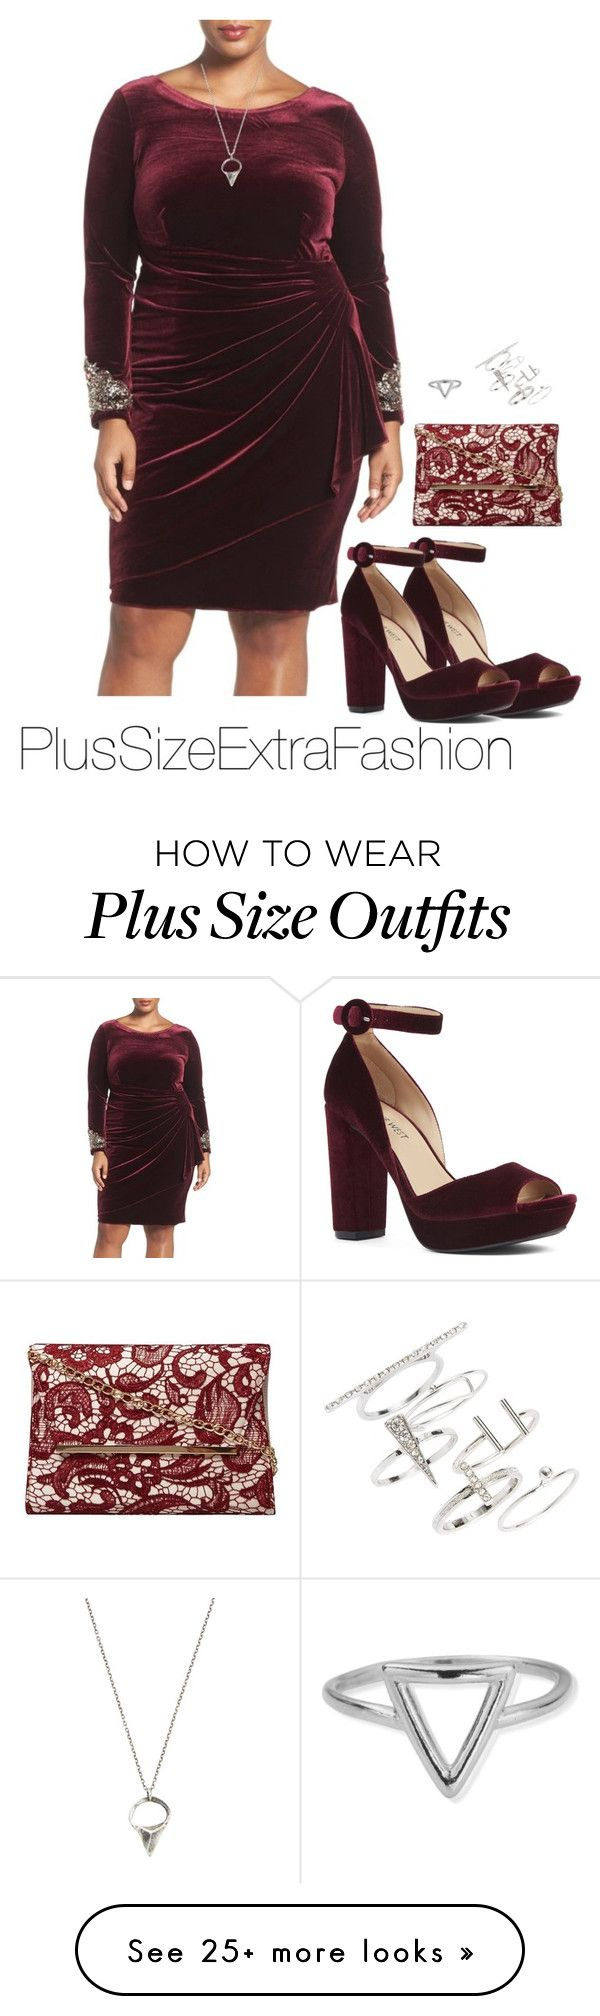 """""""Edgy Burgundy Plus Size Formal Holiday Outfit"""" by plussizeextrafashion on Polyvore featuring Alex Evenings, Nine West, Dorothy Perkins, Lauren Wolf, ChloBo, Topshop and plus size dresses"""